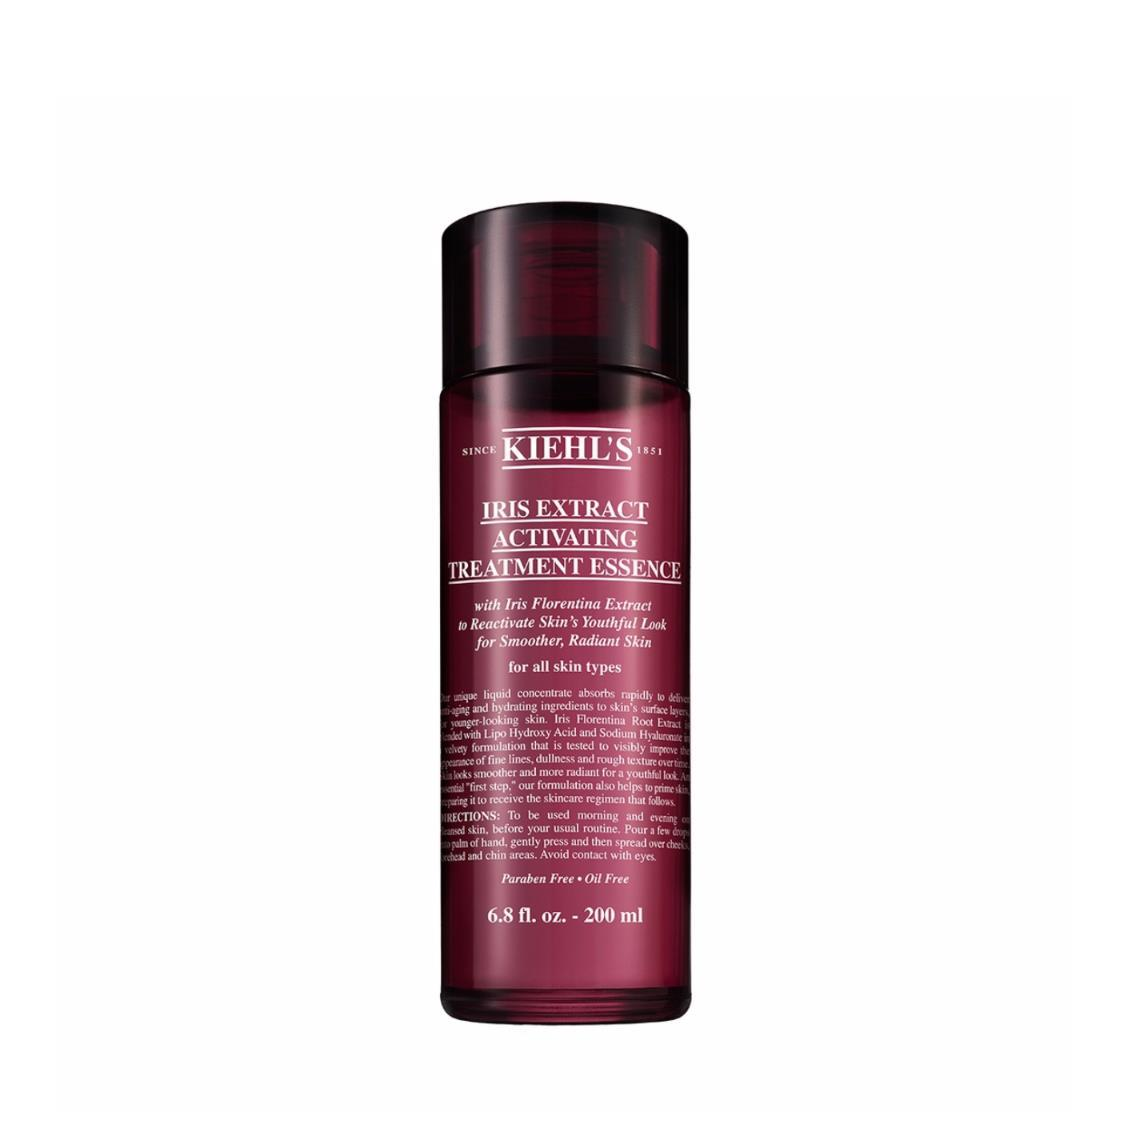 Iris Extract Activating Treatment Essence 200ml